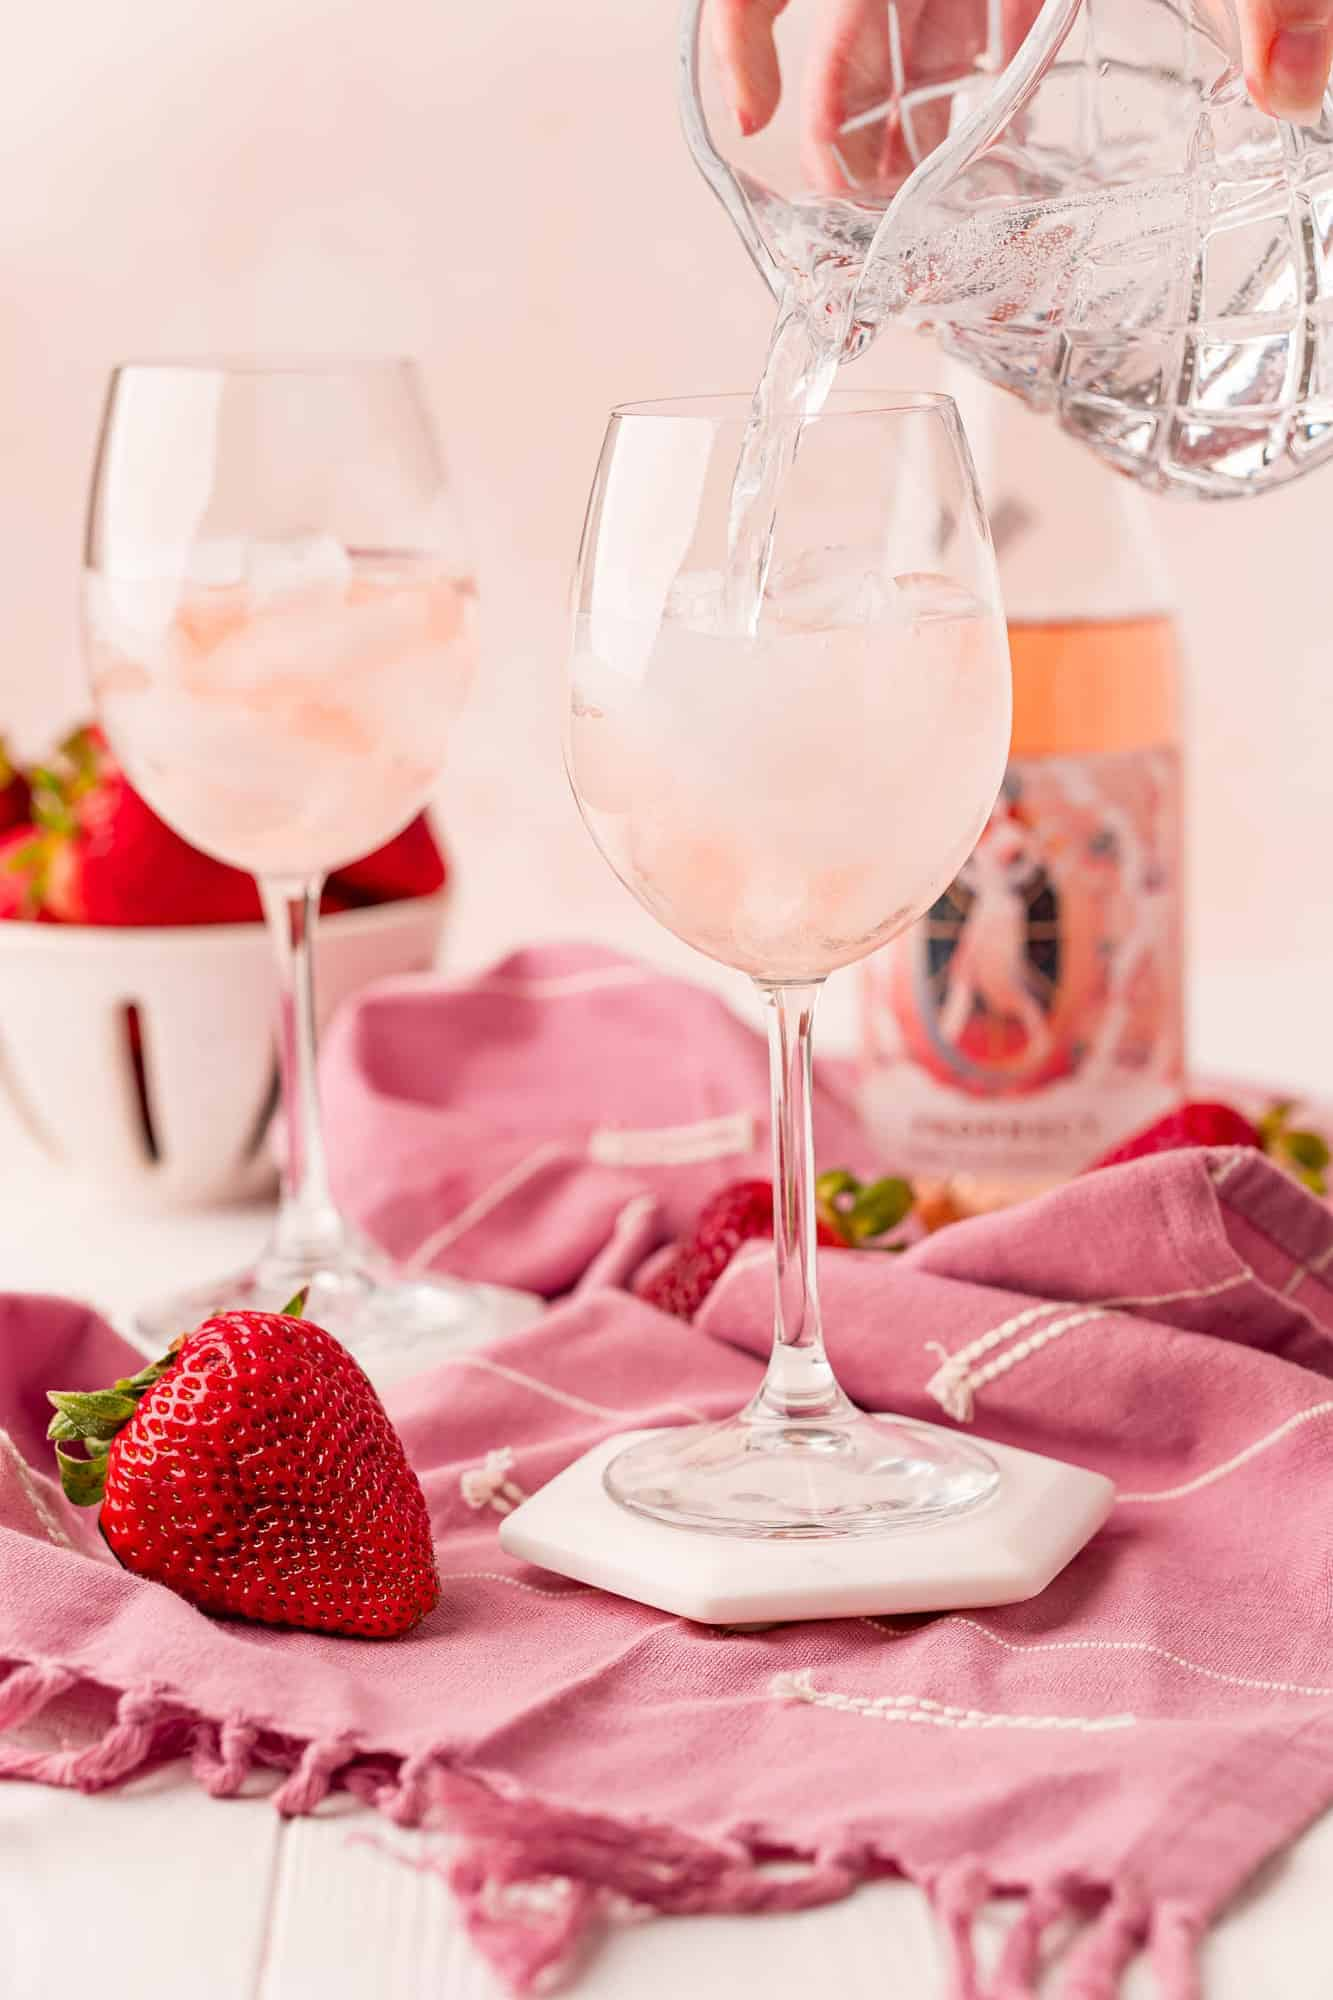 Club soda being poured into a wine glass with ice and rose wine.